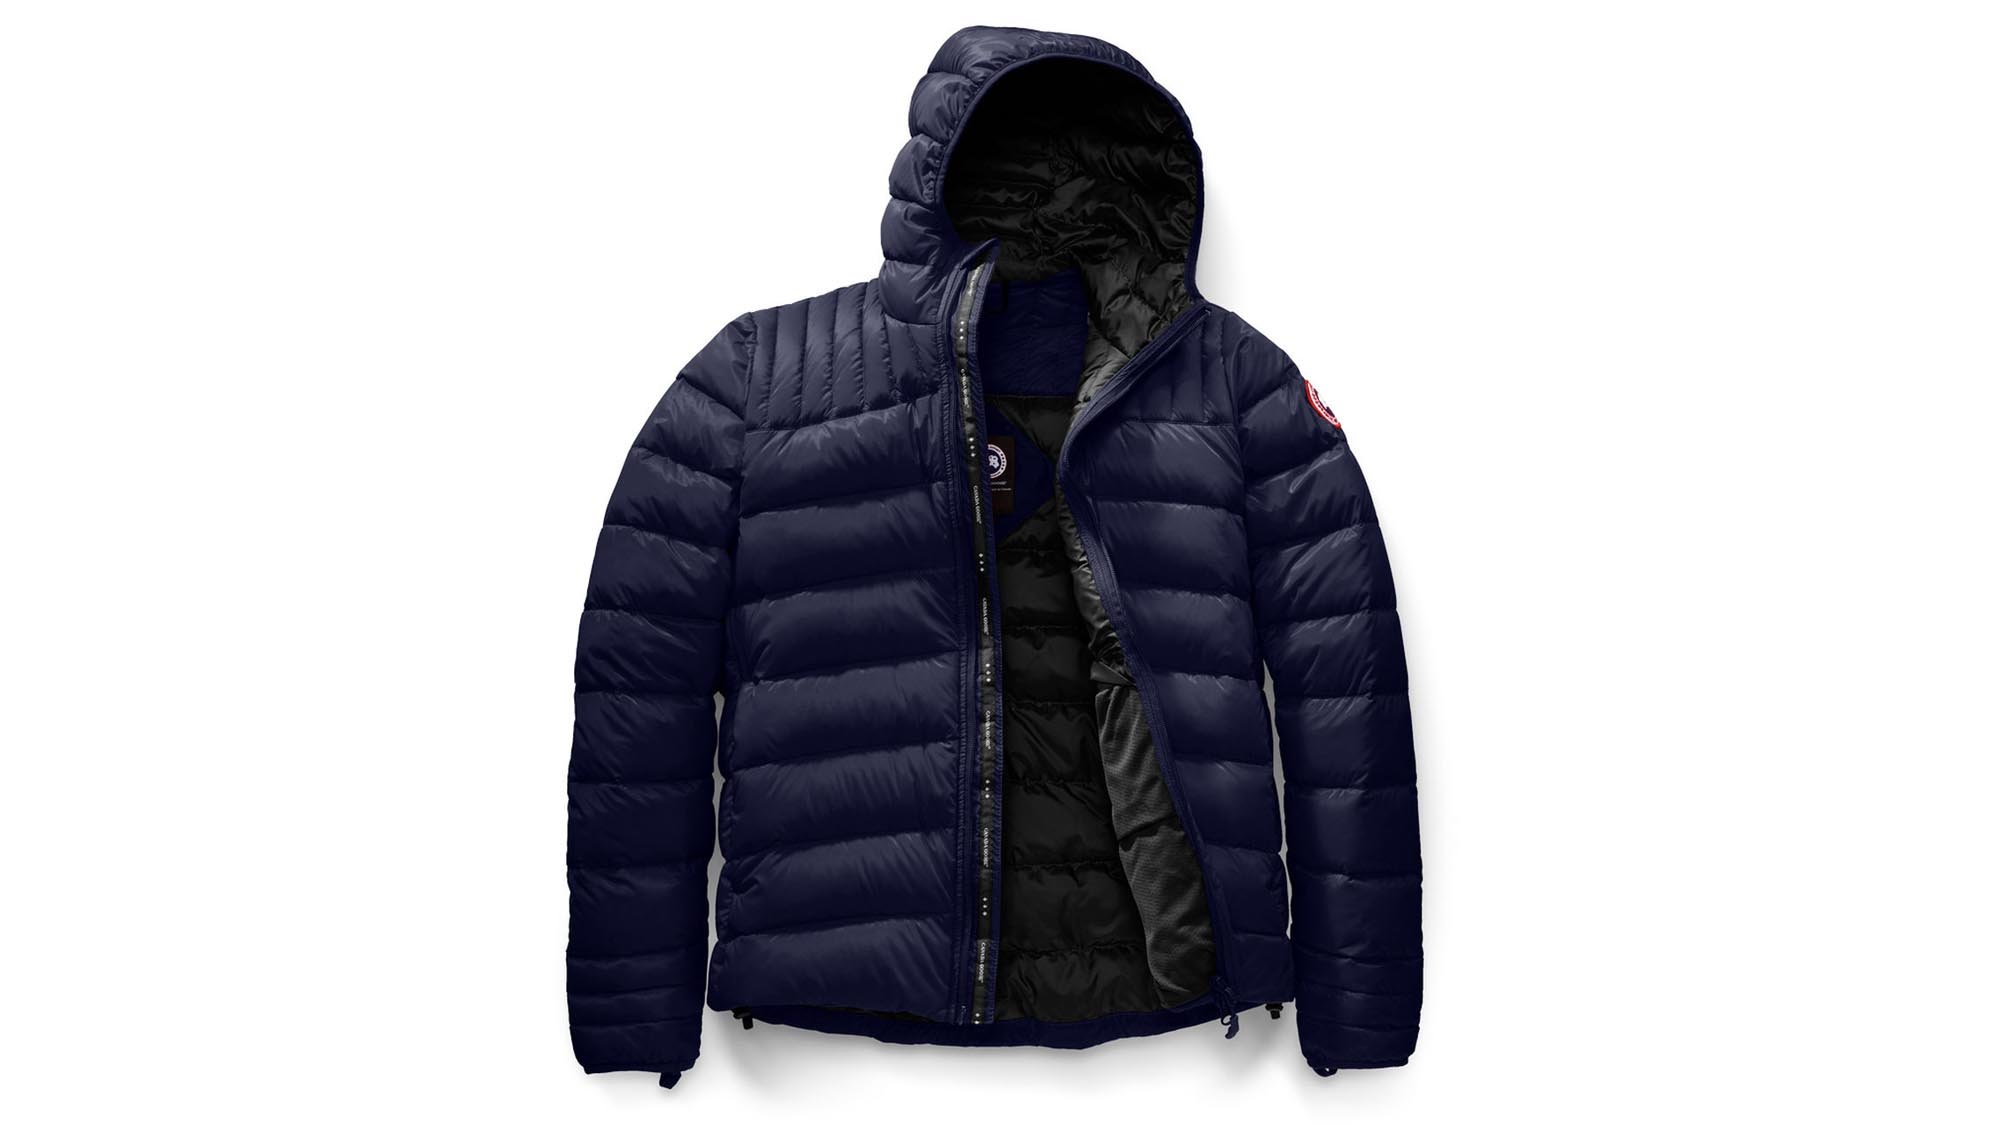 best down jackets 2017 stay warm with the best down jackets from